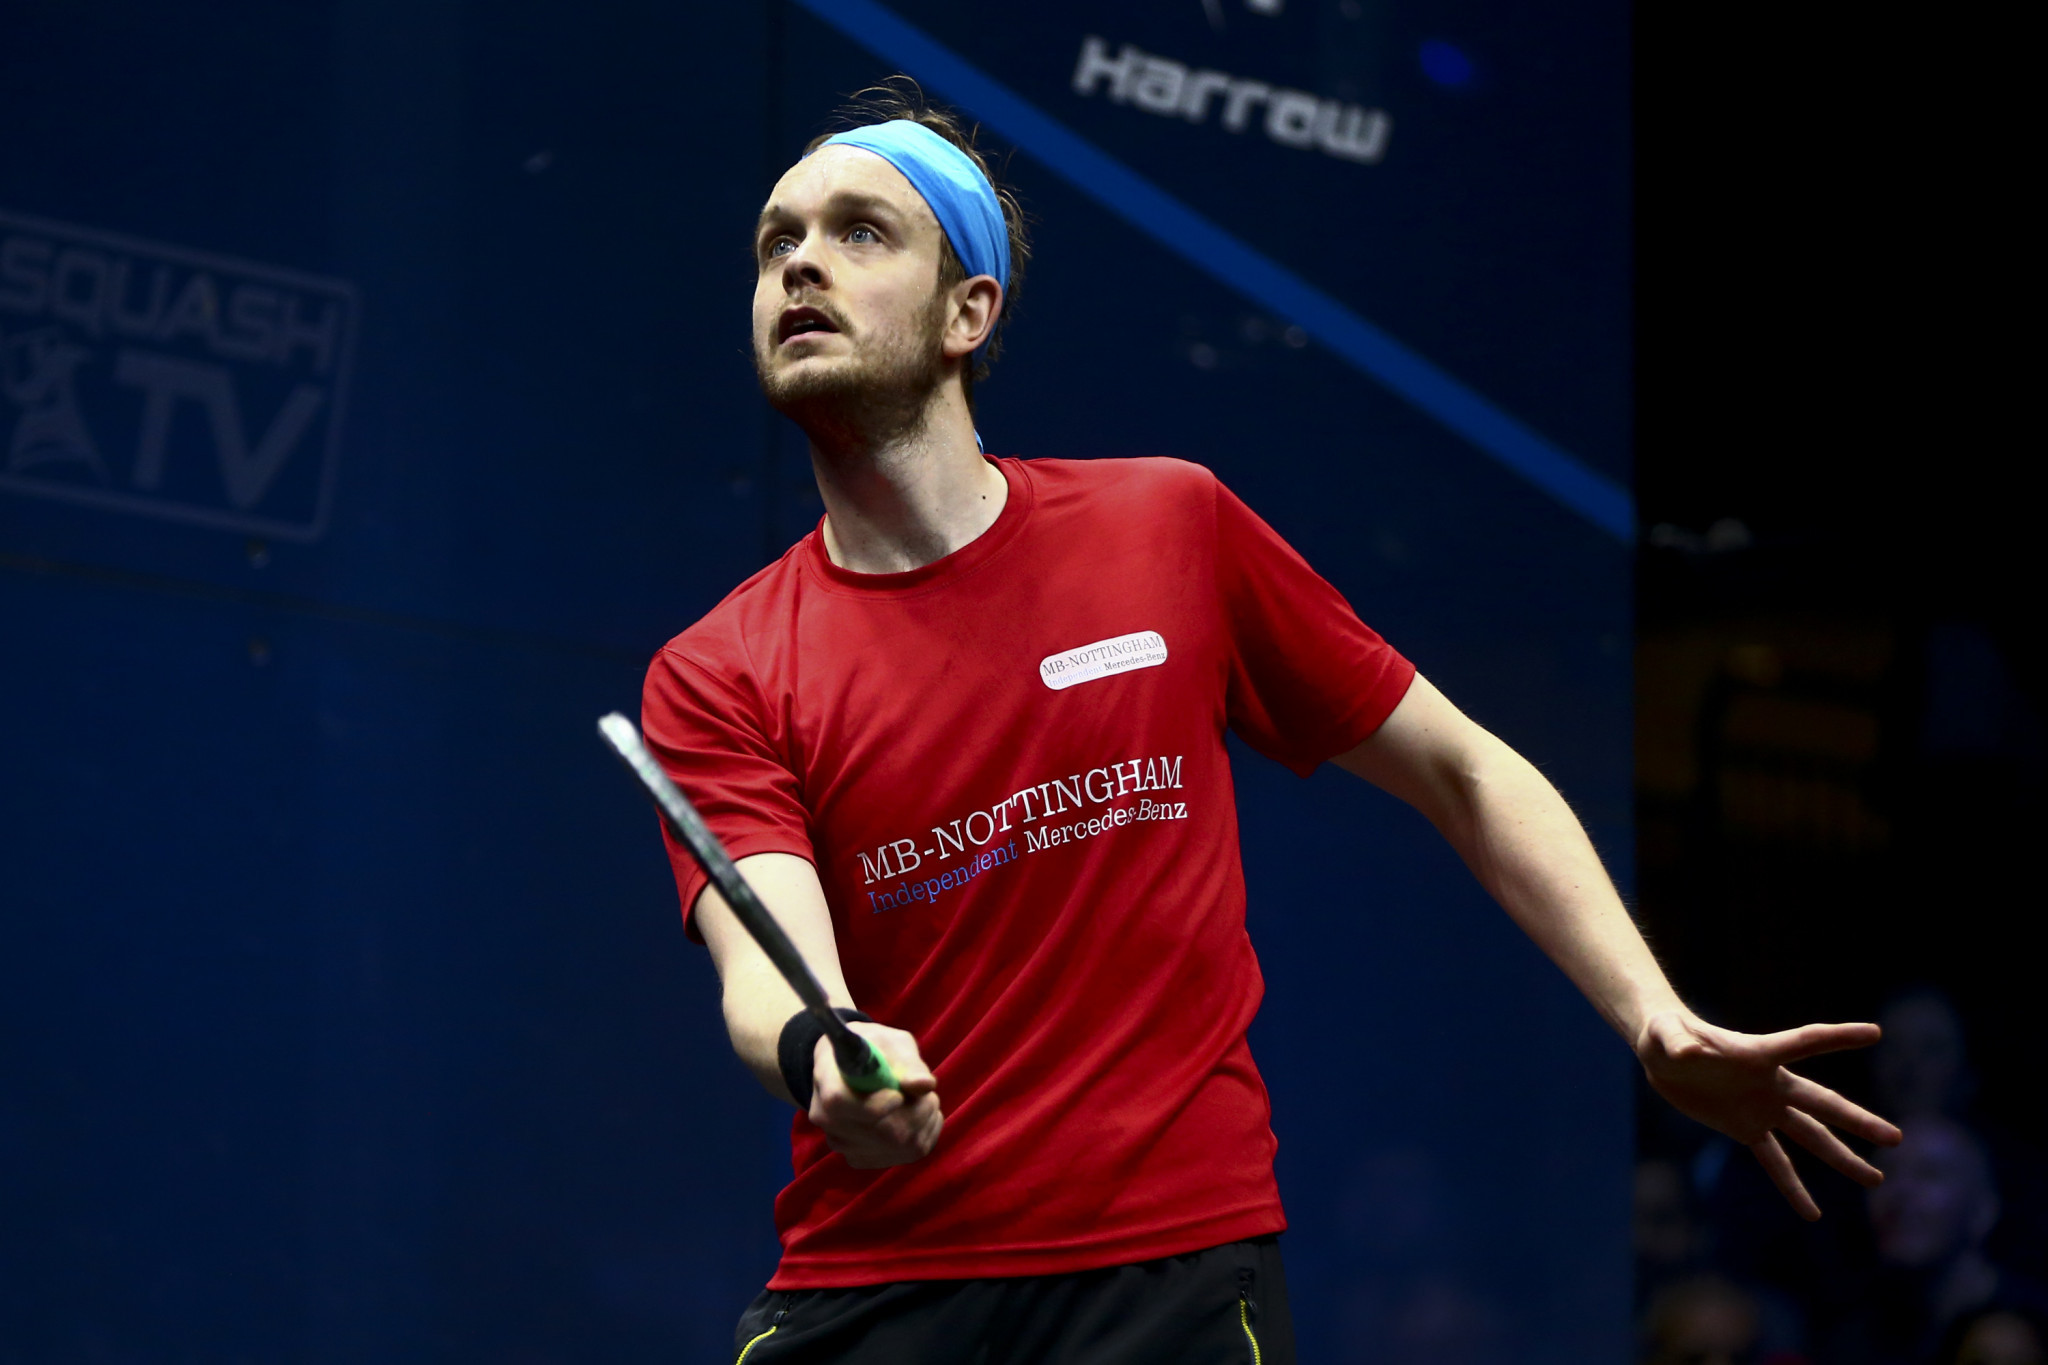 England move one win away from successive Men's World Team Squash Championships title